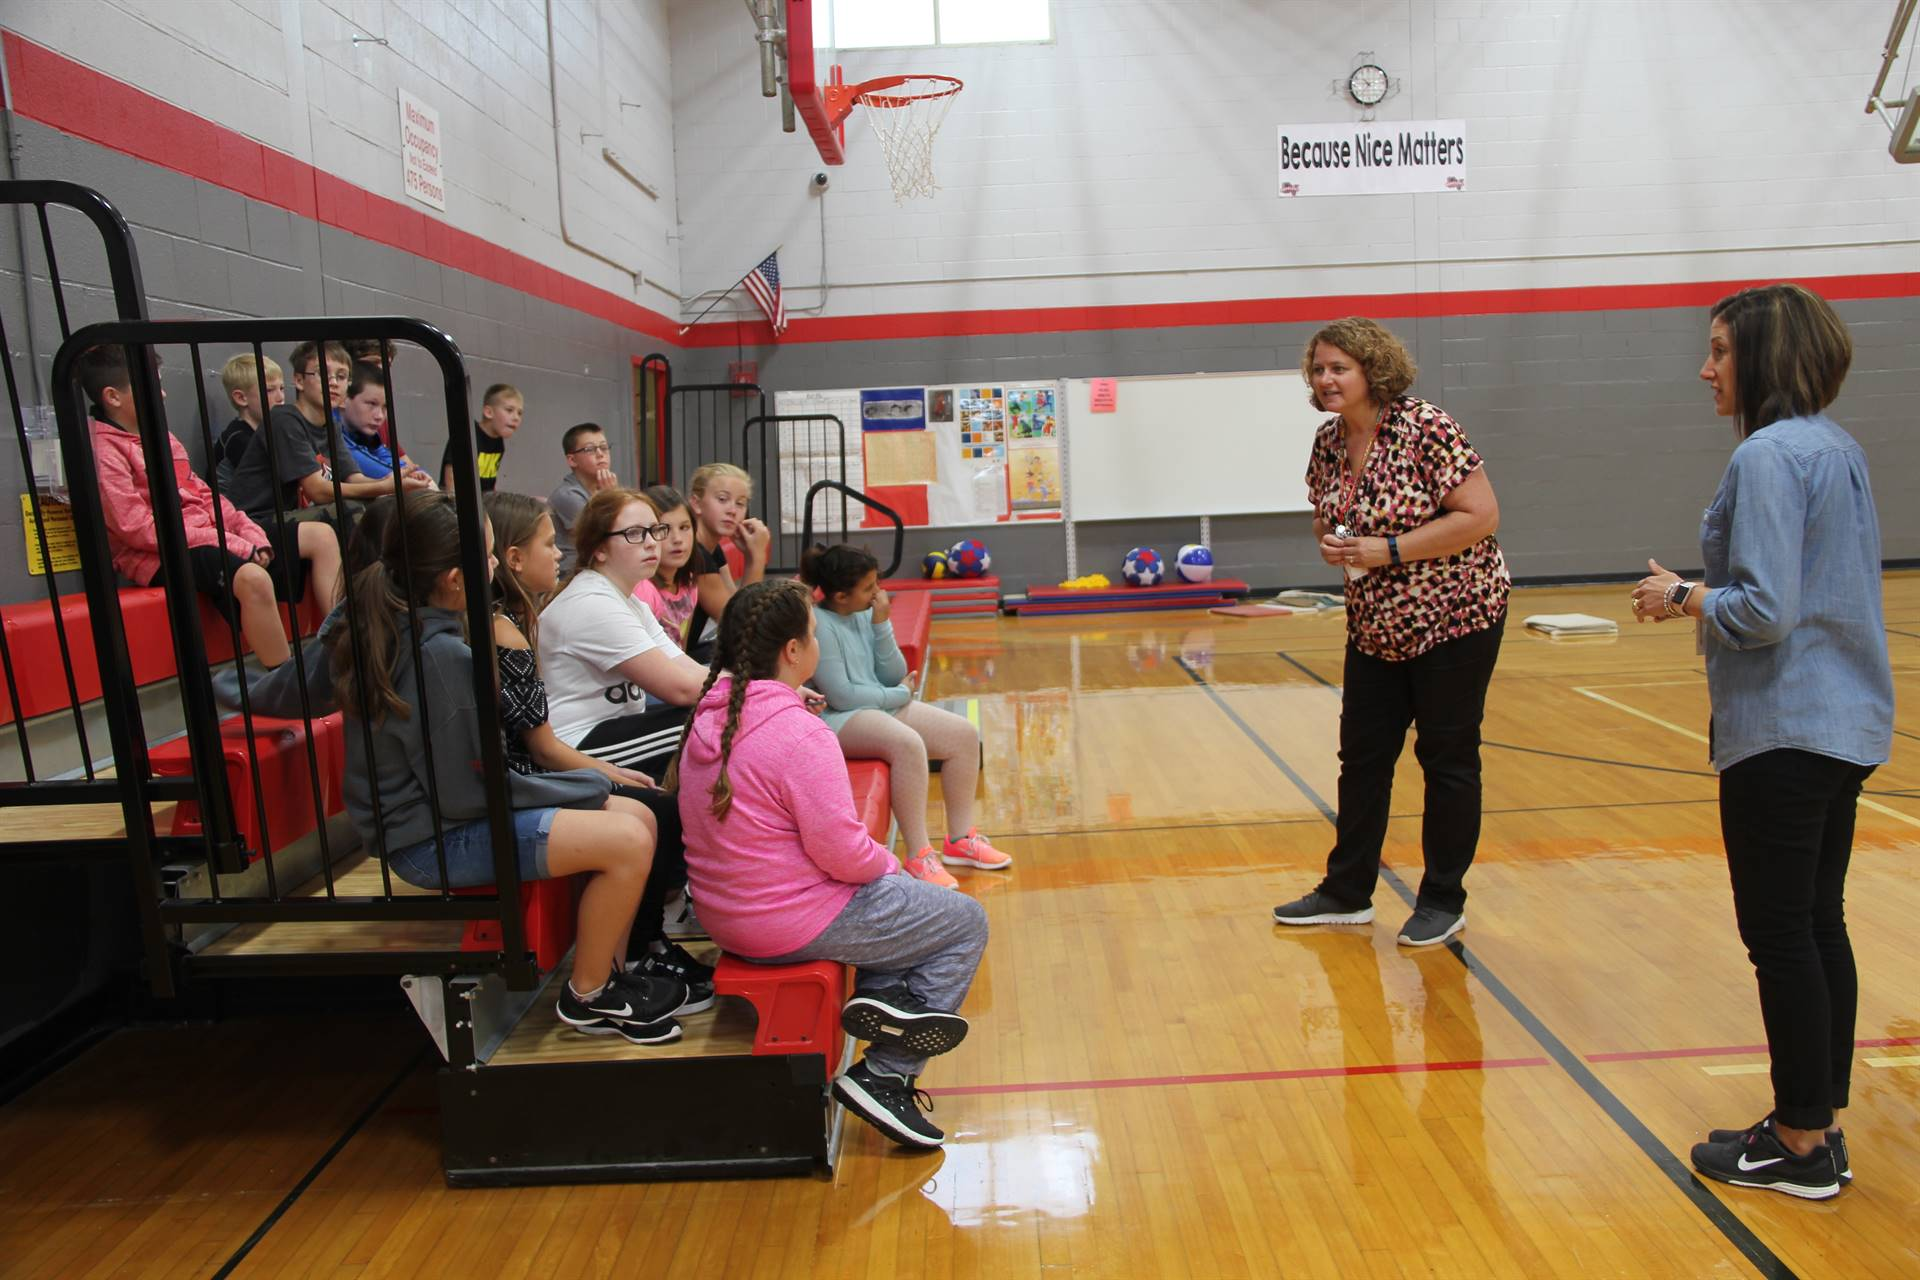 guidance counselors talk to middle school students in middle school gymnasium